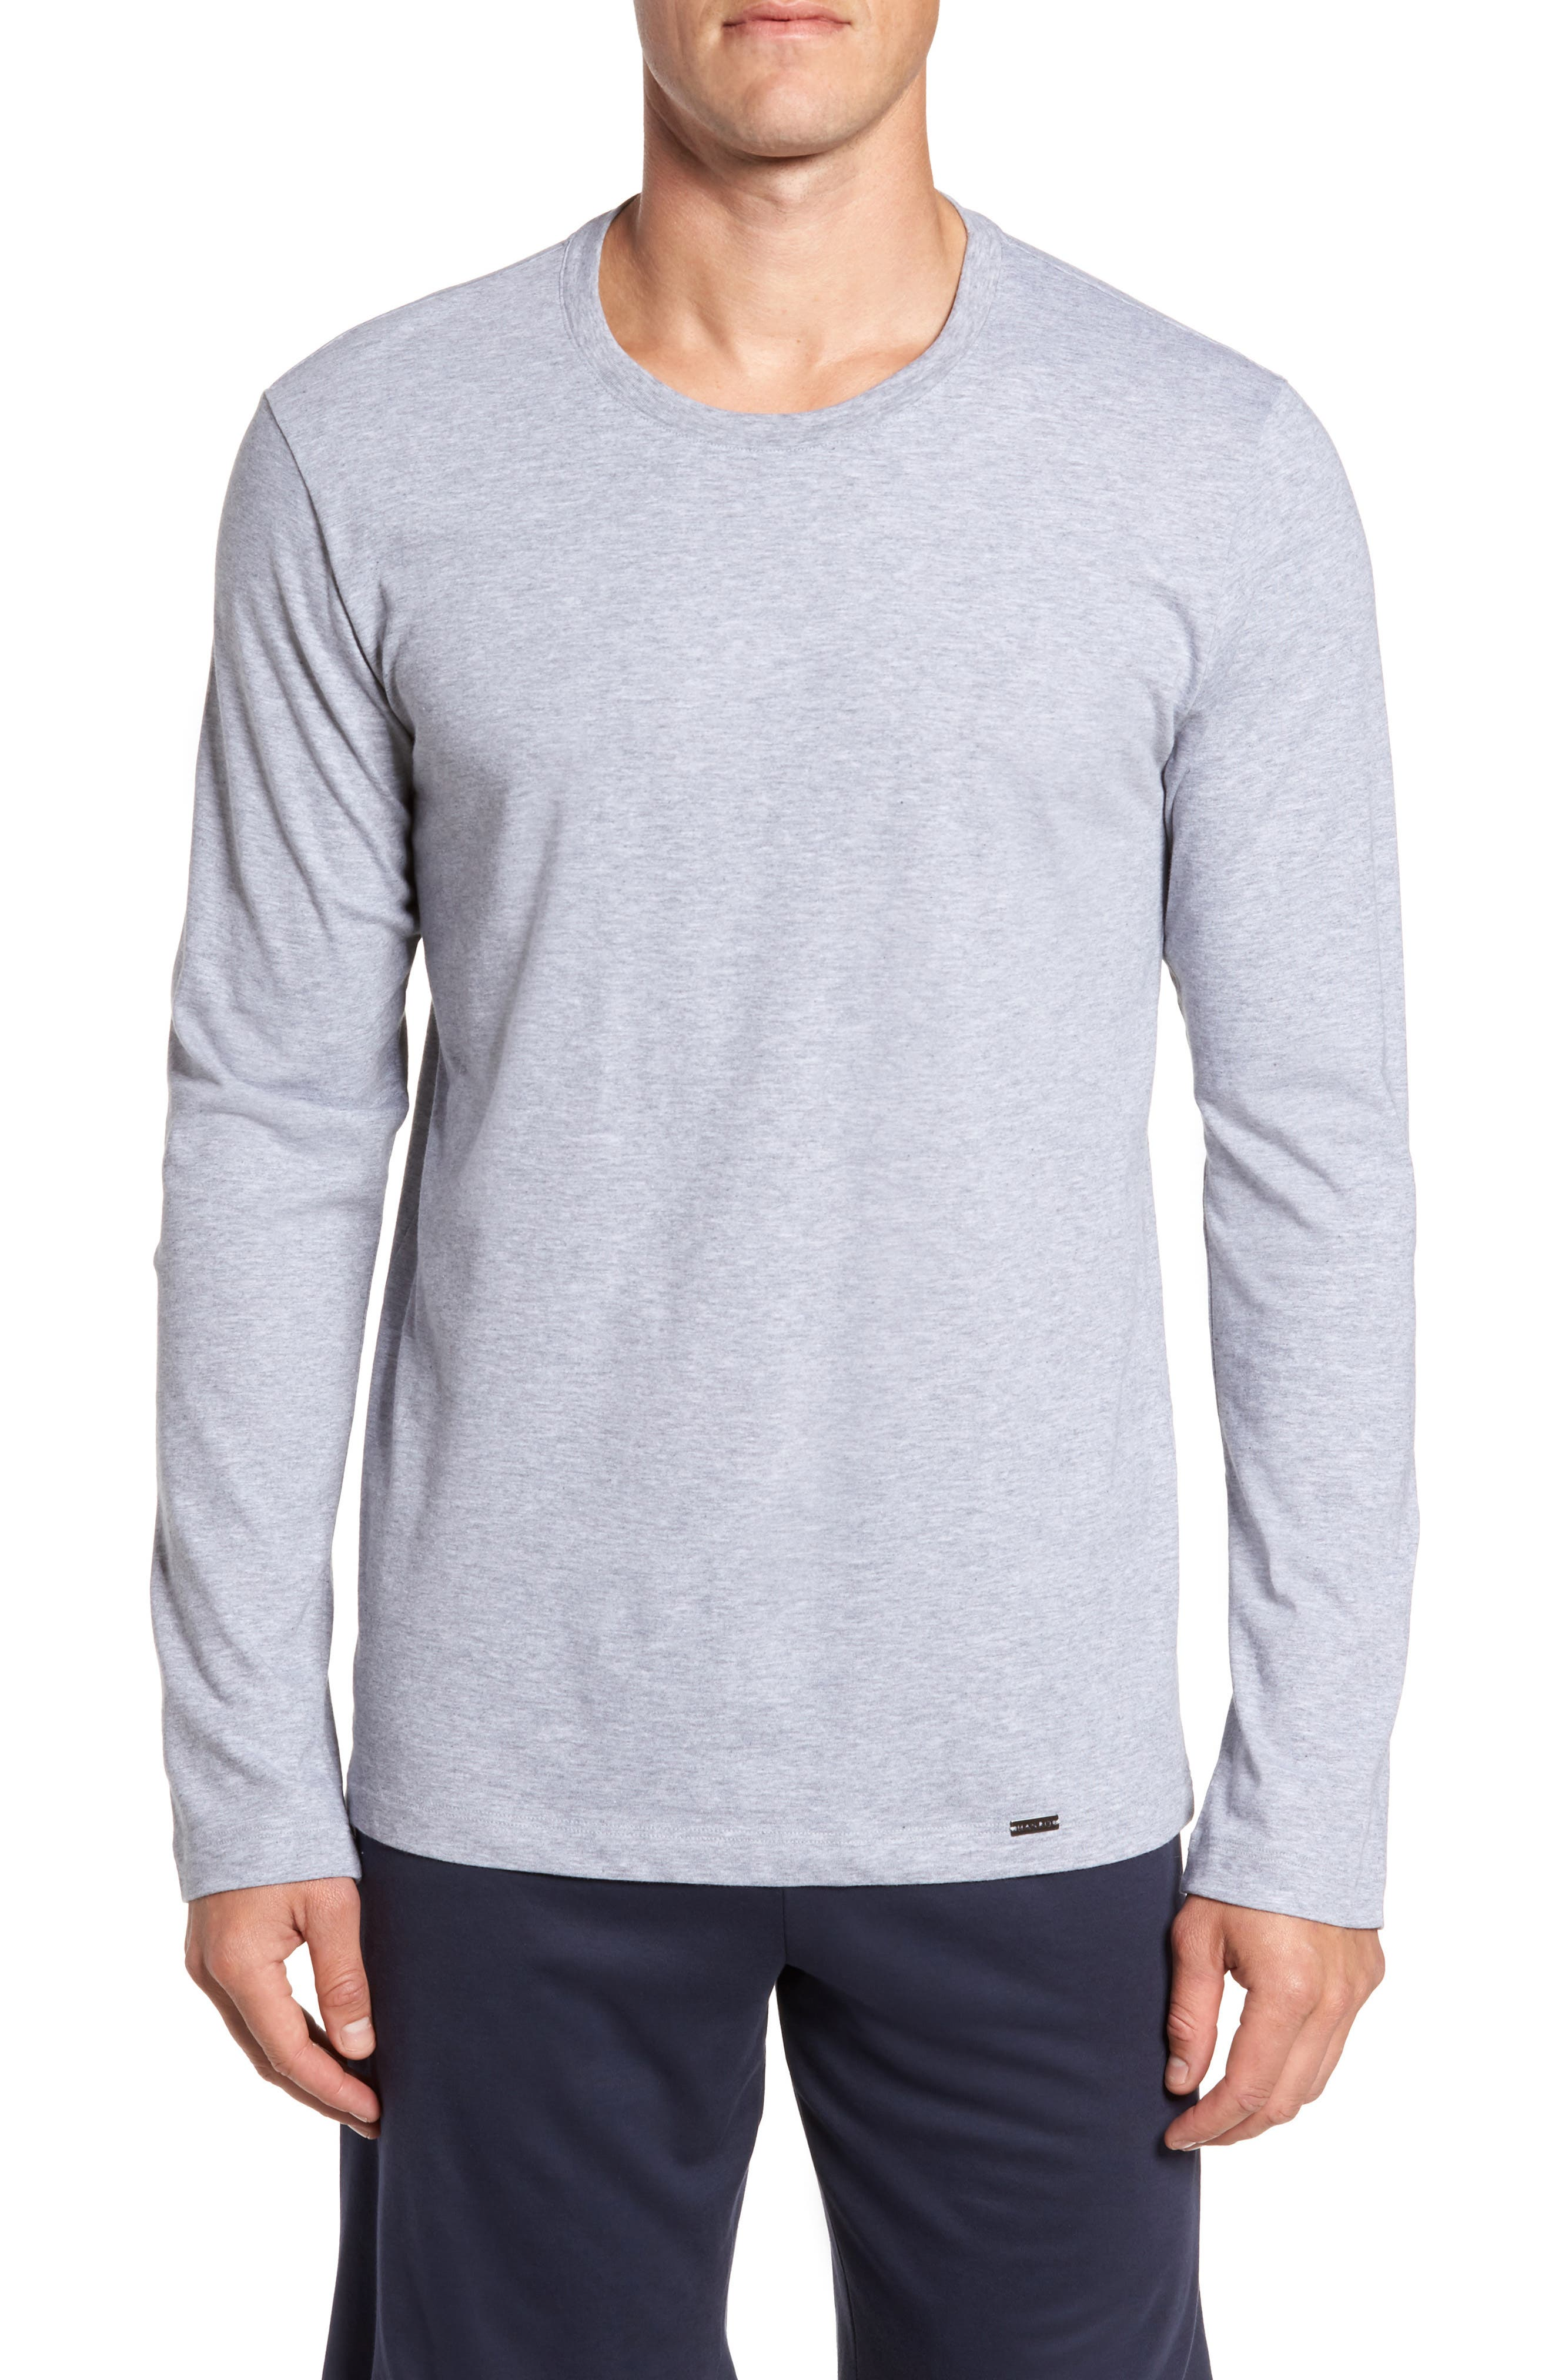 Living Long Sleeve T-Shirt,                             Main thumbnail 1, color,                             Grey Melange